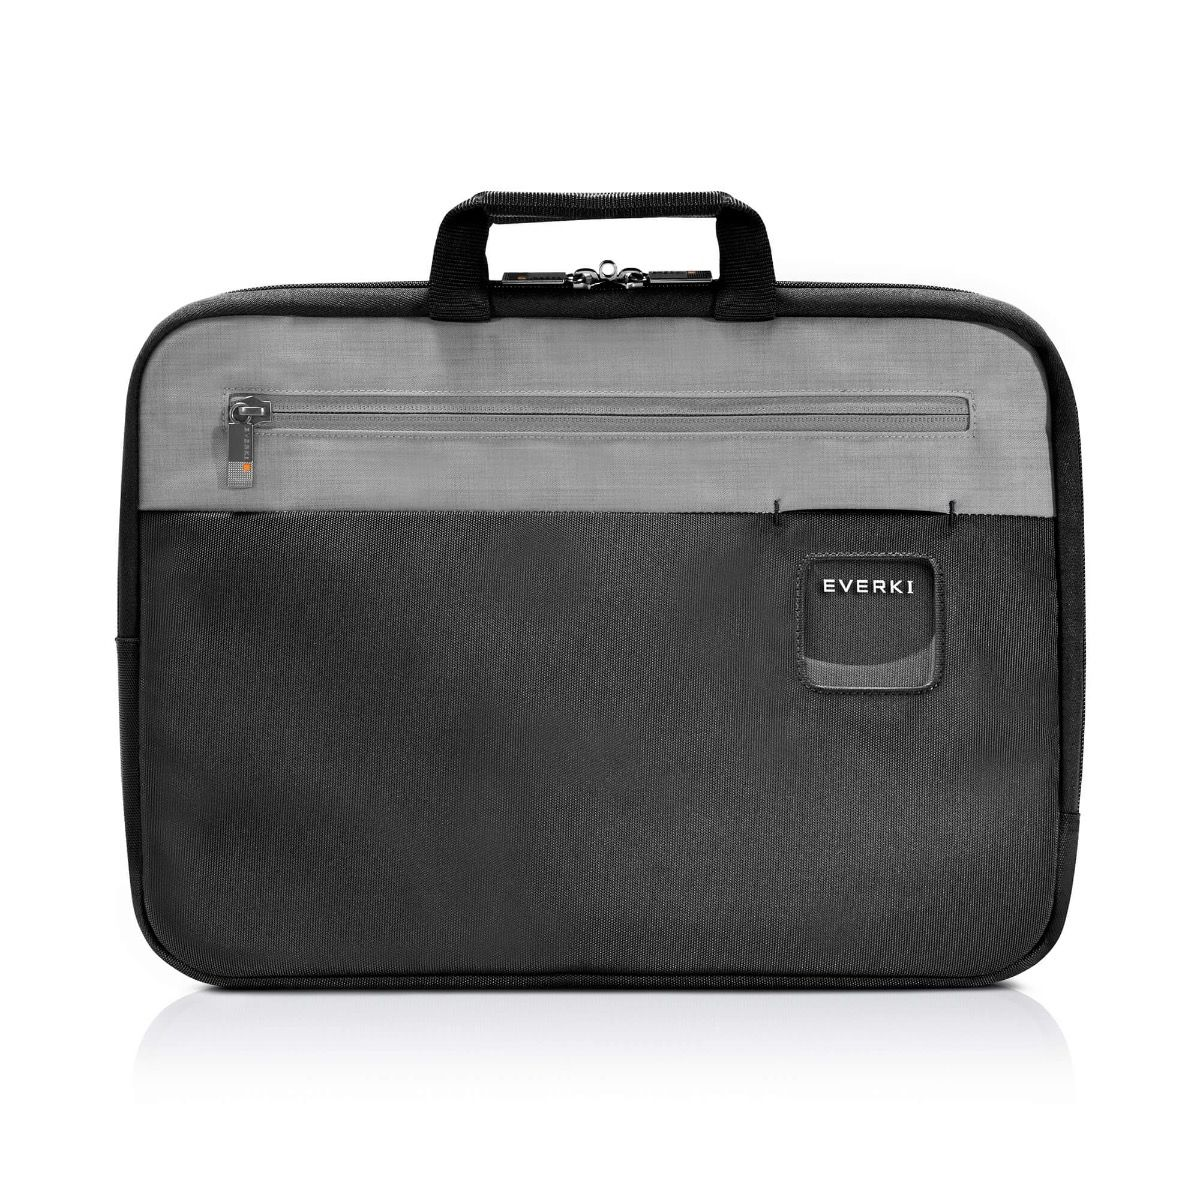 EVERKI ContemPRO 15 Inch Black Laptop Sleeve